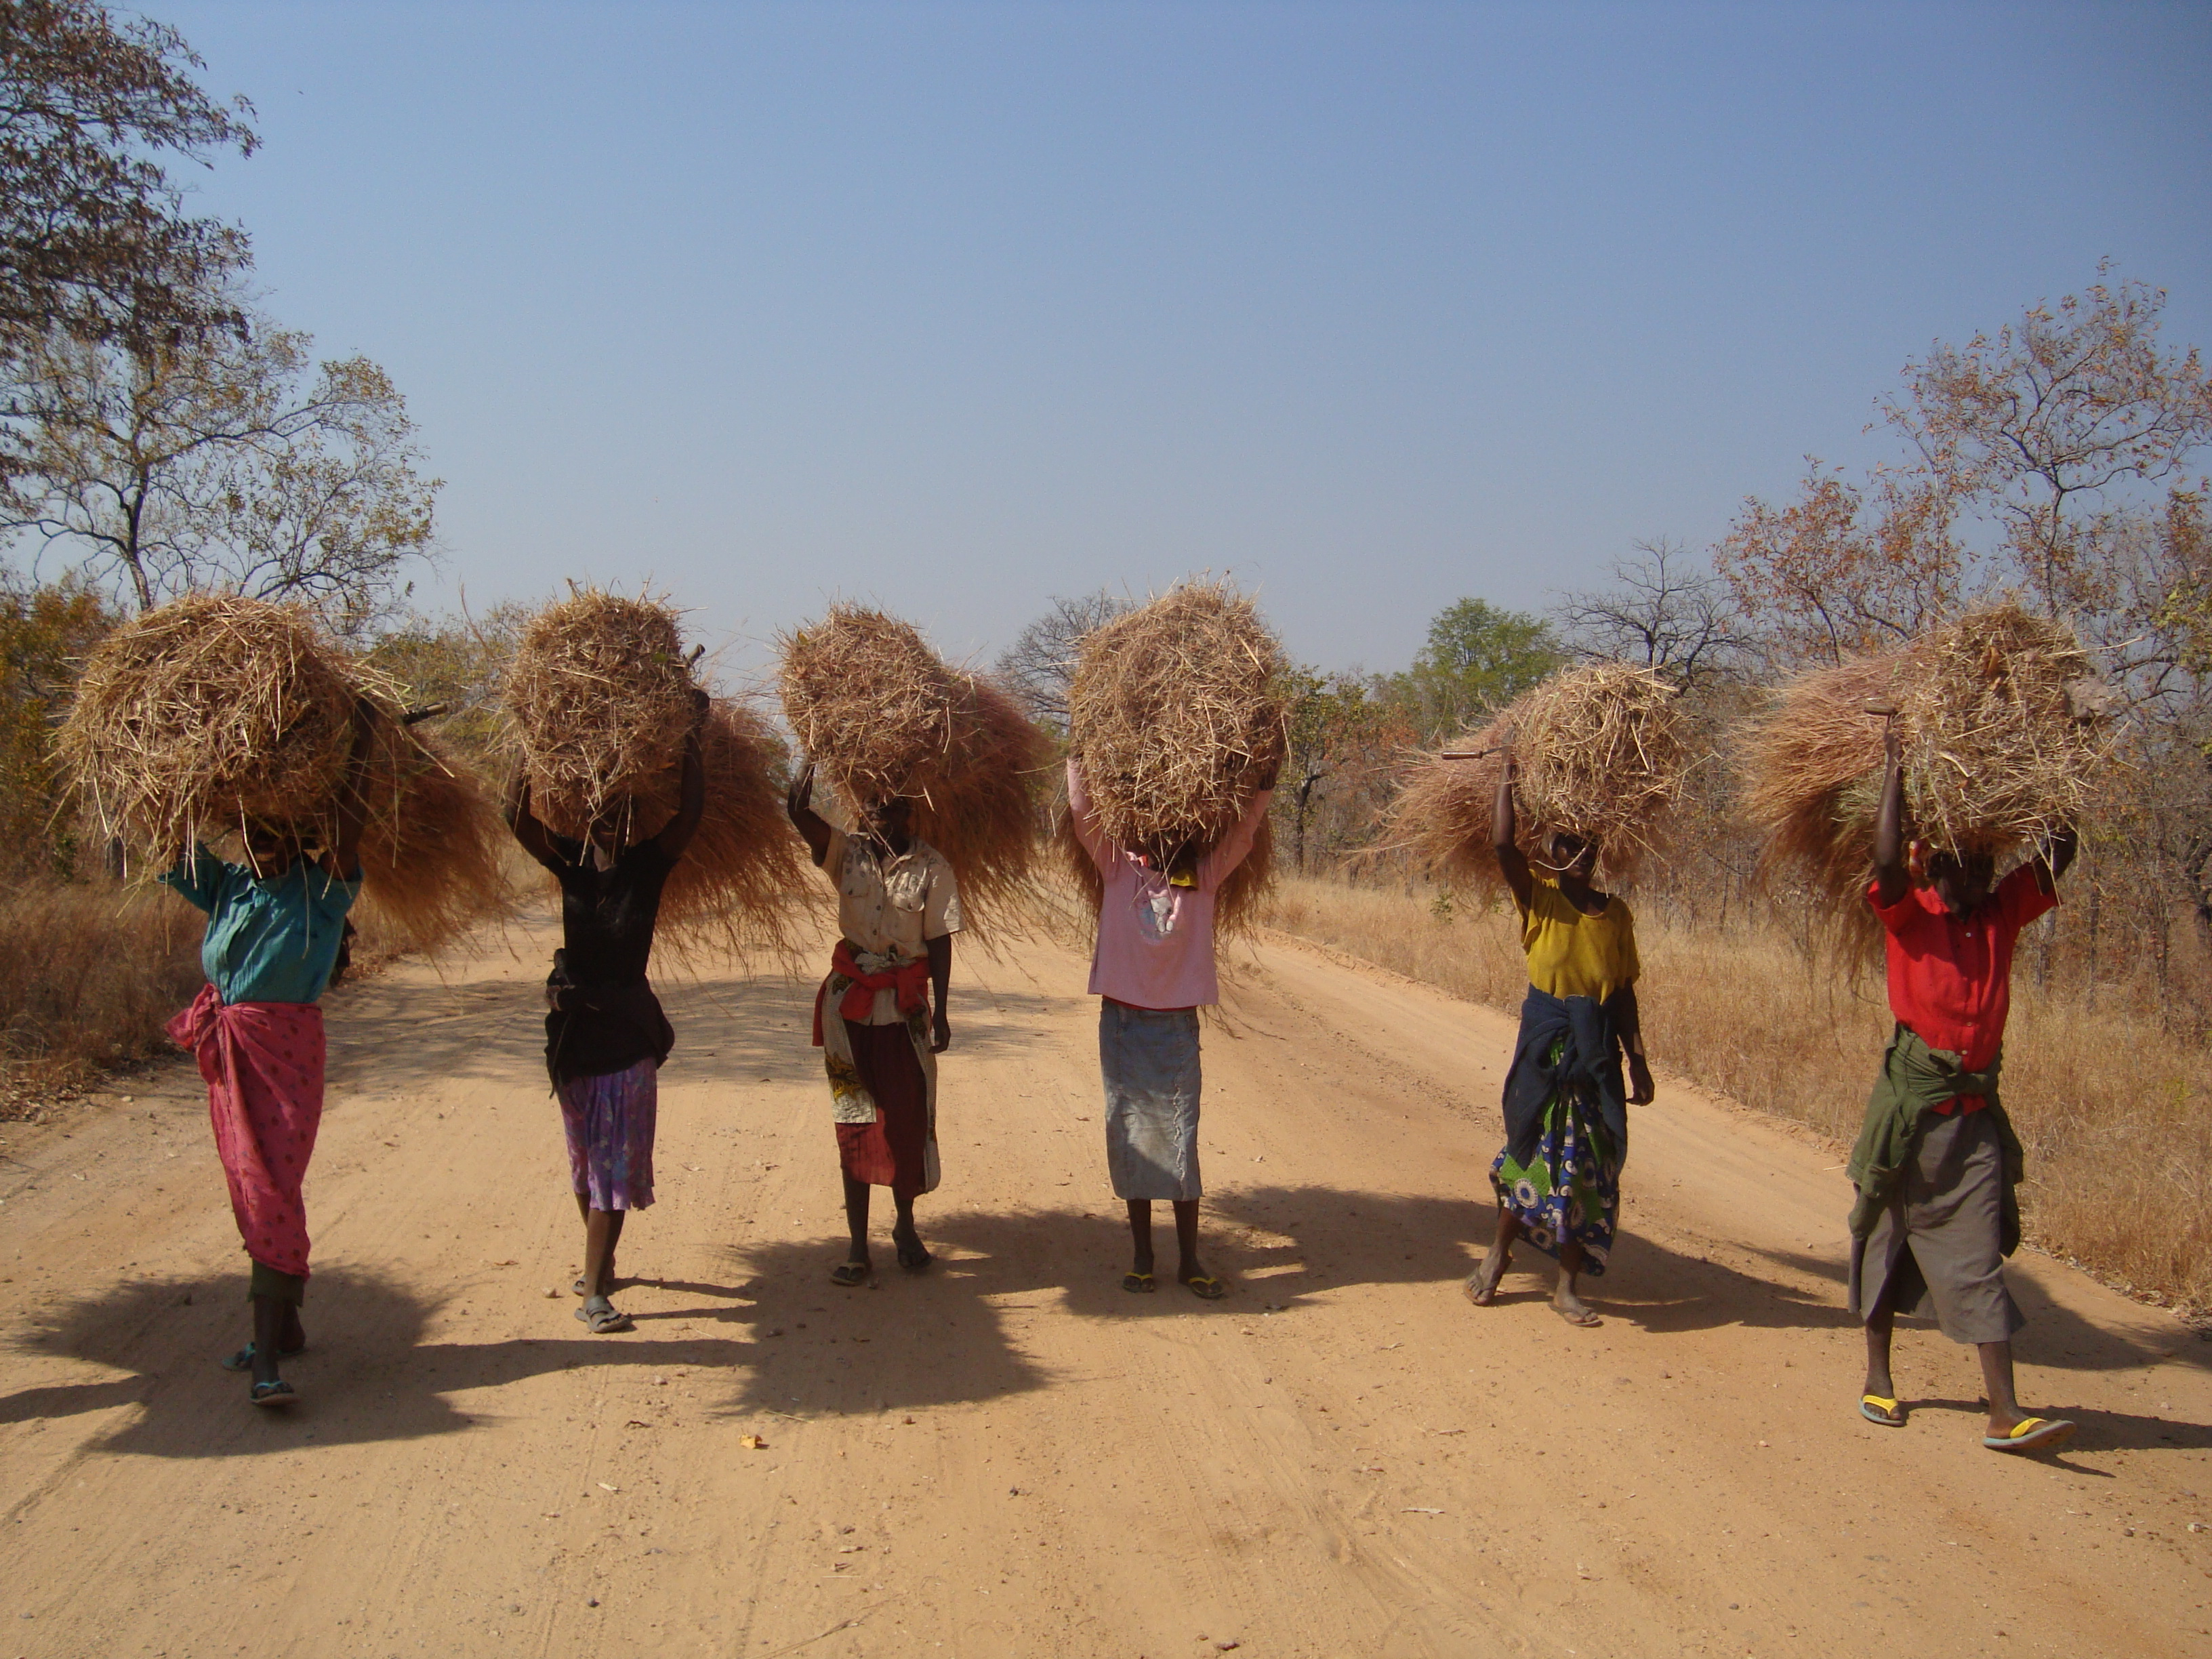 On the road to work, Africa ladies carrying hay above their heads down a dusty African road